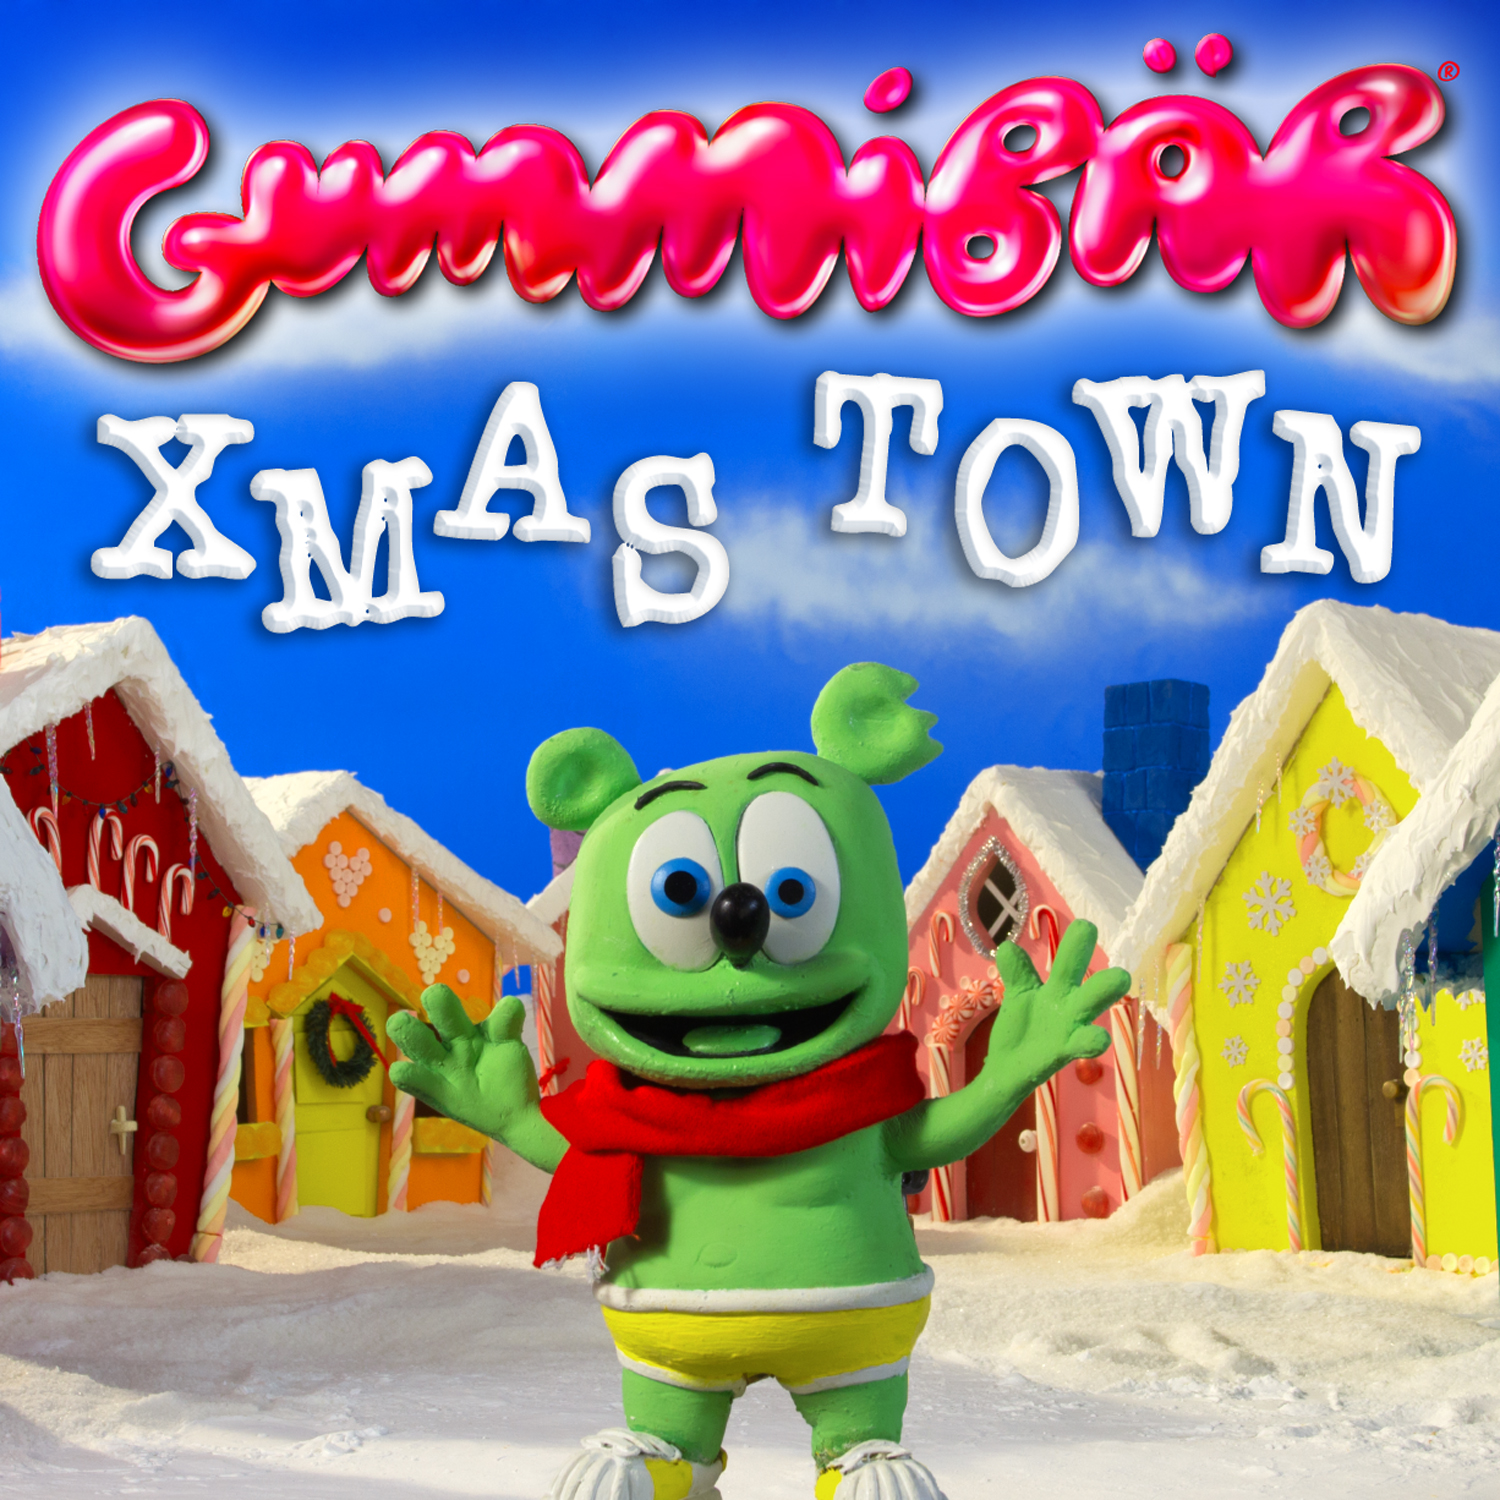 Renowned Animation Director Rohitash Rao Surprises Gummibär Fans With Claymation Christmas Video